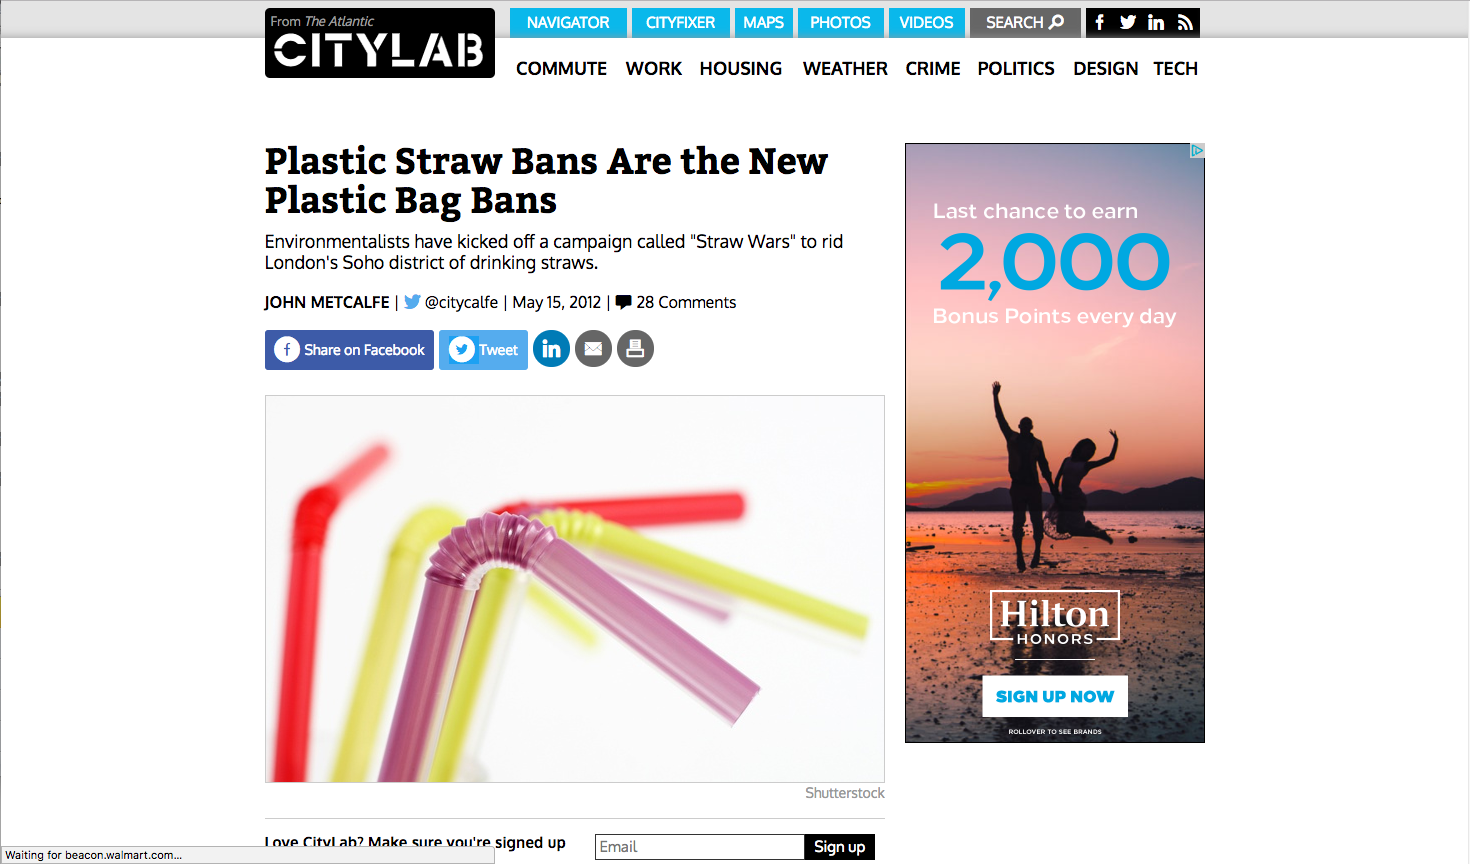 - Plastic Straw Bans Are the New Plastic Bag Bans